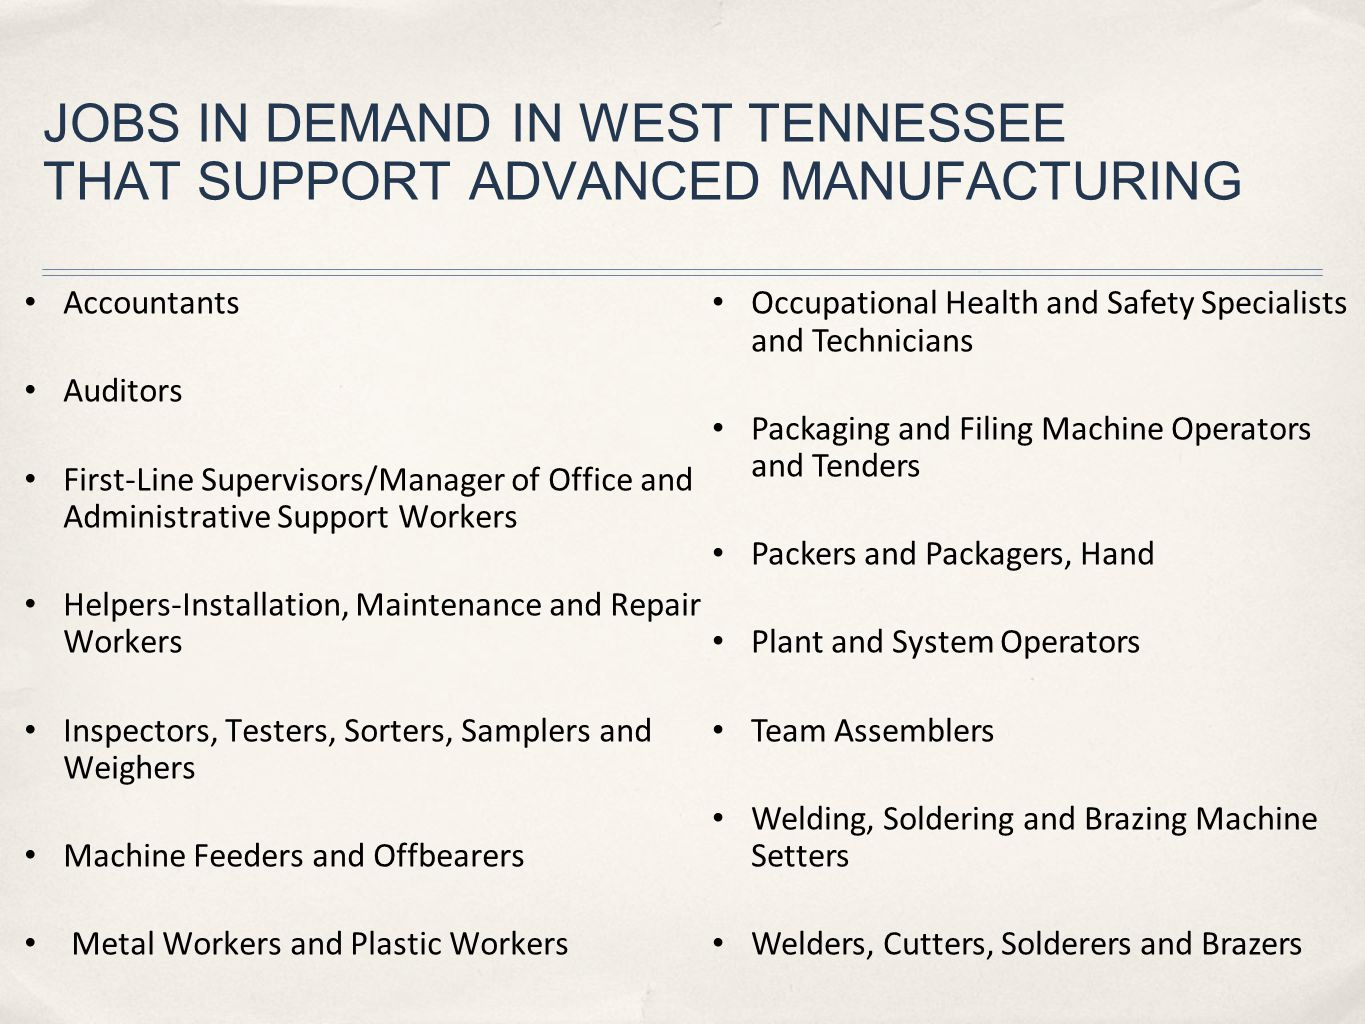 JOBS IN DEMAND IN WEST TENNESSEE THAT SUPPORT ADVANCED MANUFACTURING Accountants Auditors First-Line Supervisors/Manager of Office and Administrative Support Workers Helpers-Installation, Maintenance and Repair Workers Inspectors, Testers, Sorters, Samplers and Weighers Machine Feeders and Offbearers Metal Workers and Plastic Workers Occupational Health and Safety Specialists and Technicians Packaging and Filing Machine Operators and Tenders Packers and Packagers, Hand Plant and System Operators Team Assemblers Welding, Soldering and Brazing Machine Setters Welders, Cutters, Solderers and Brazers